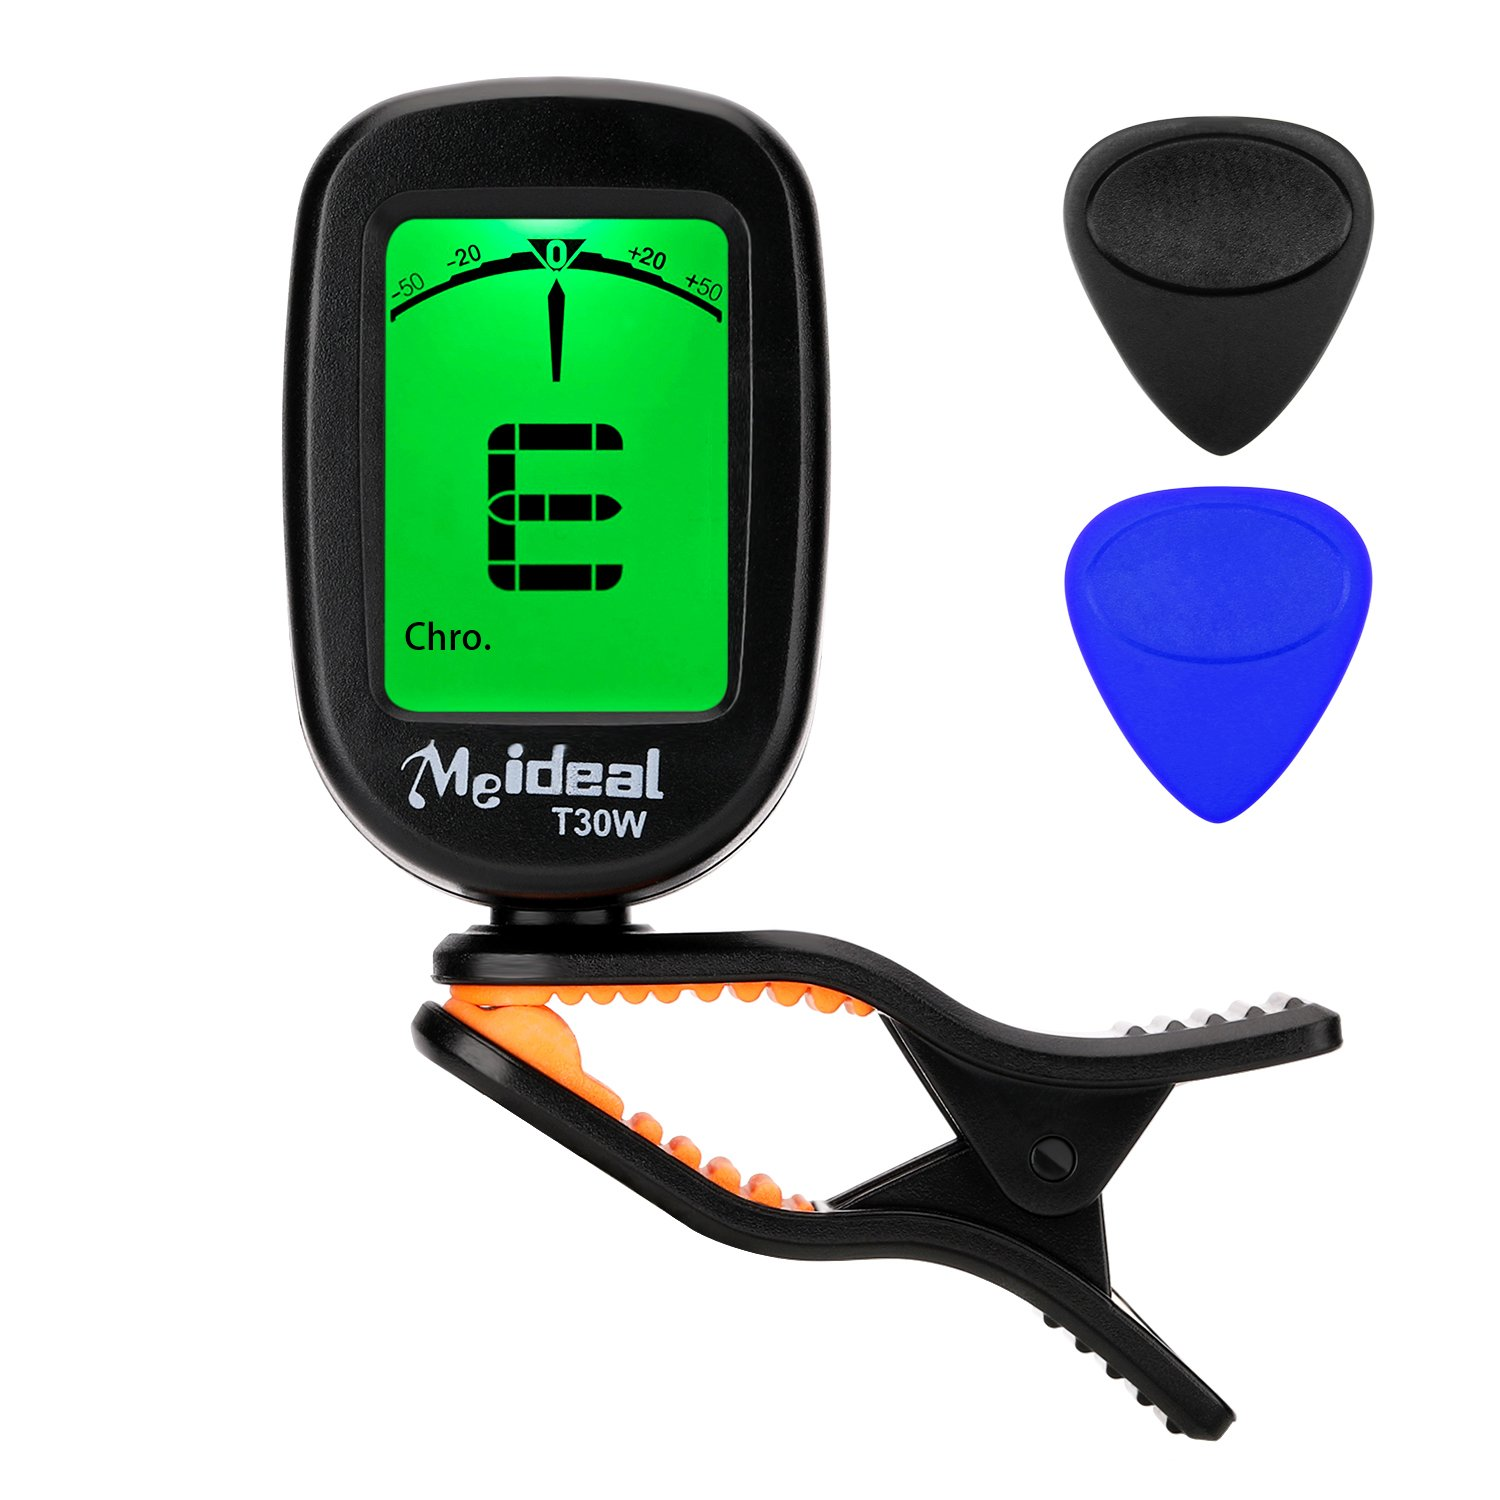 yueshion Clip-on Tuner 360°Rotating Sensitive Large Clear LCD Display Guitar Tuner Auto Power Off Including Battery Also Suitable for Bass Ukulele Banjo,with 2 Guitar Picks (black)